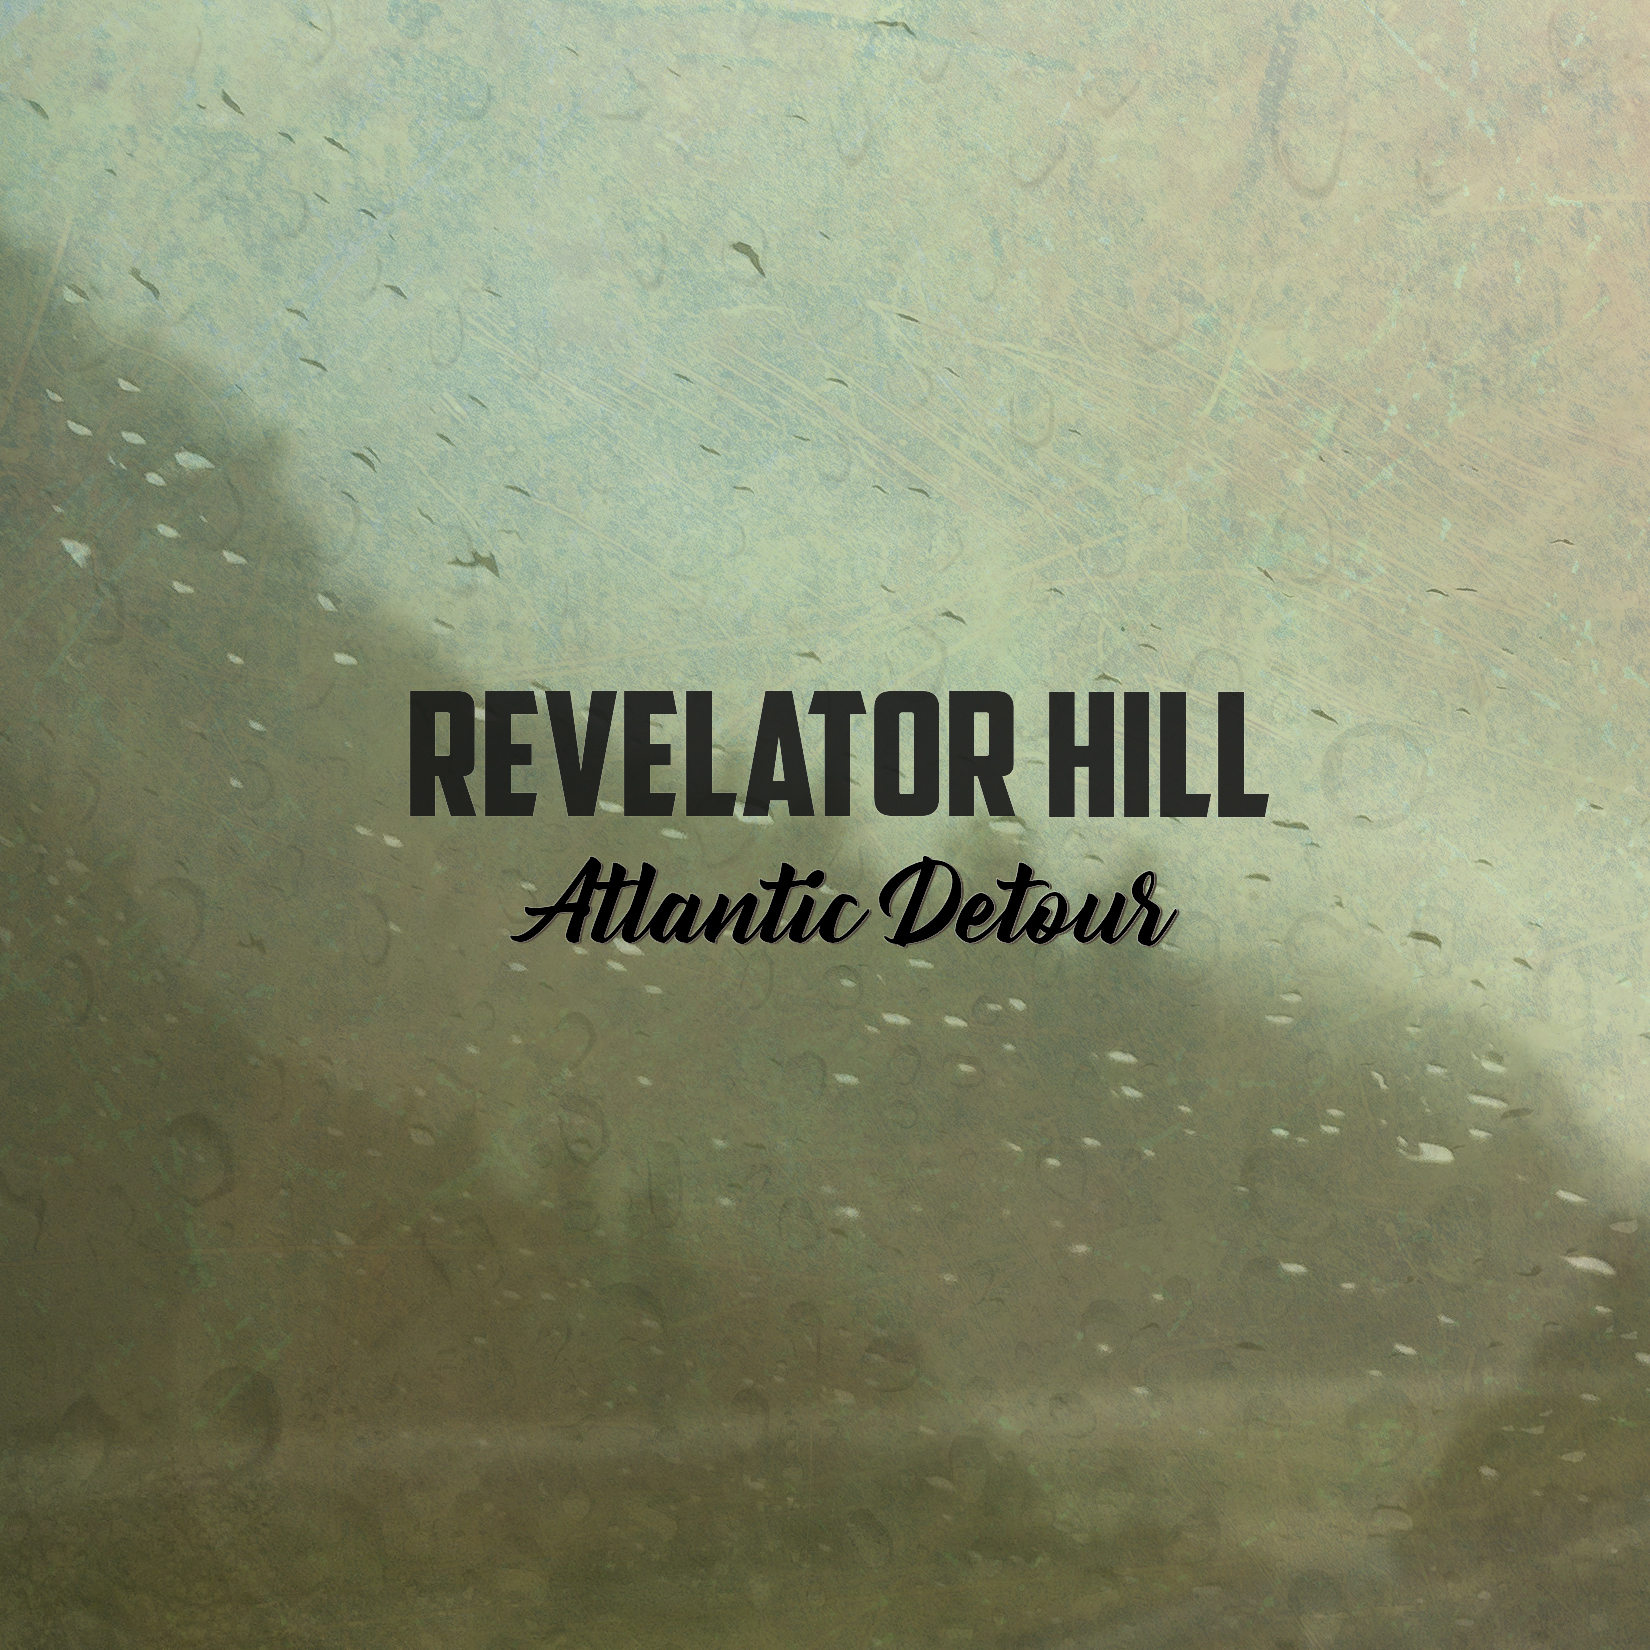 Atlantic Detour  by Revelator Hill is available everywhere starting March 3, 2017 on Root Nine Records   Official Site   Facebook   Twitter   Instagram